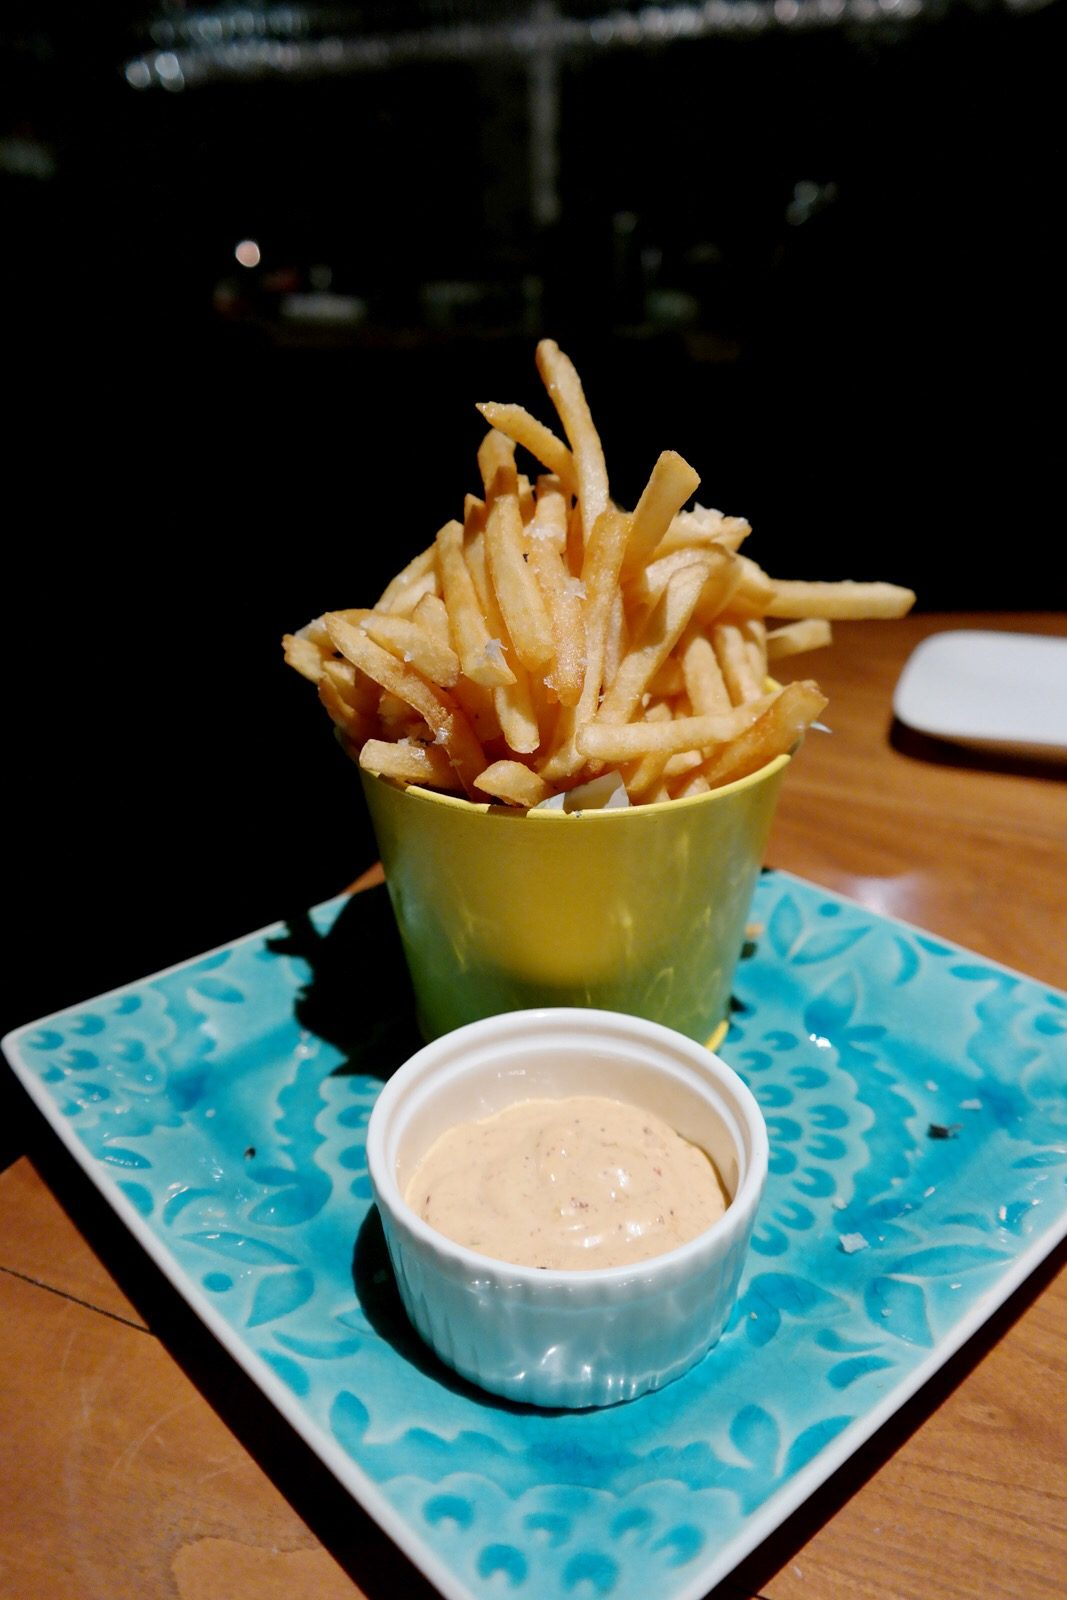 Frites Fries Beergrdn restaurant bar design URBN Hotel Shanghai boutique hotel photo usofparis travel blog